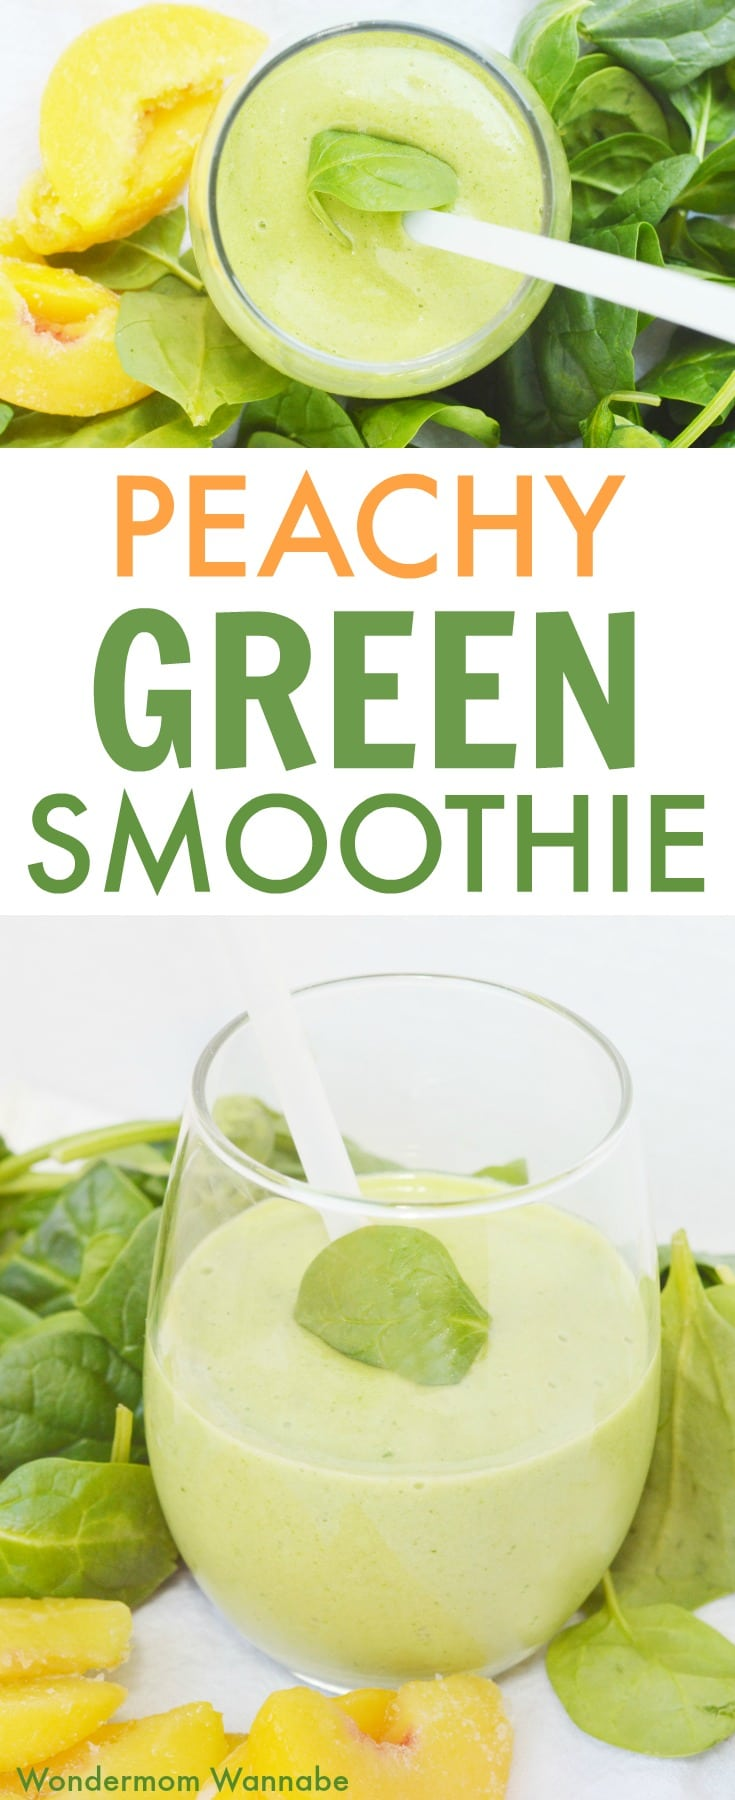 Peach Green Smoothie pin